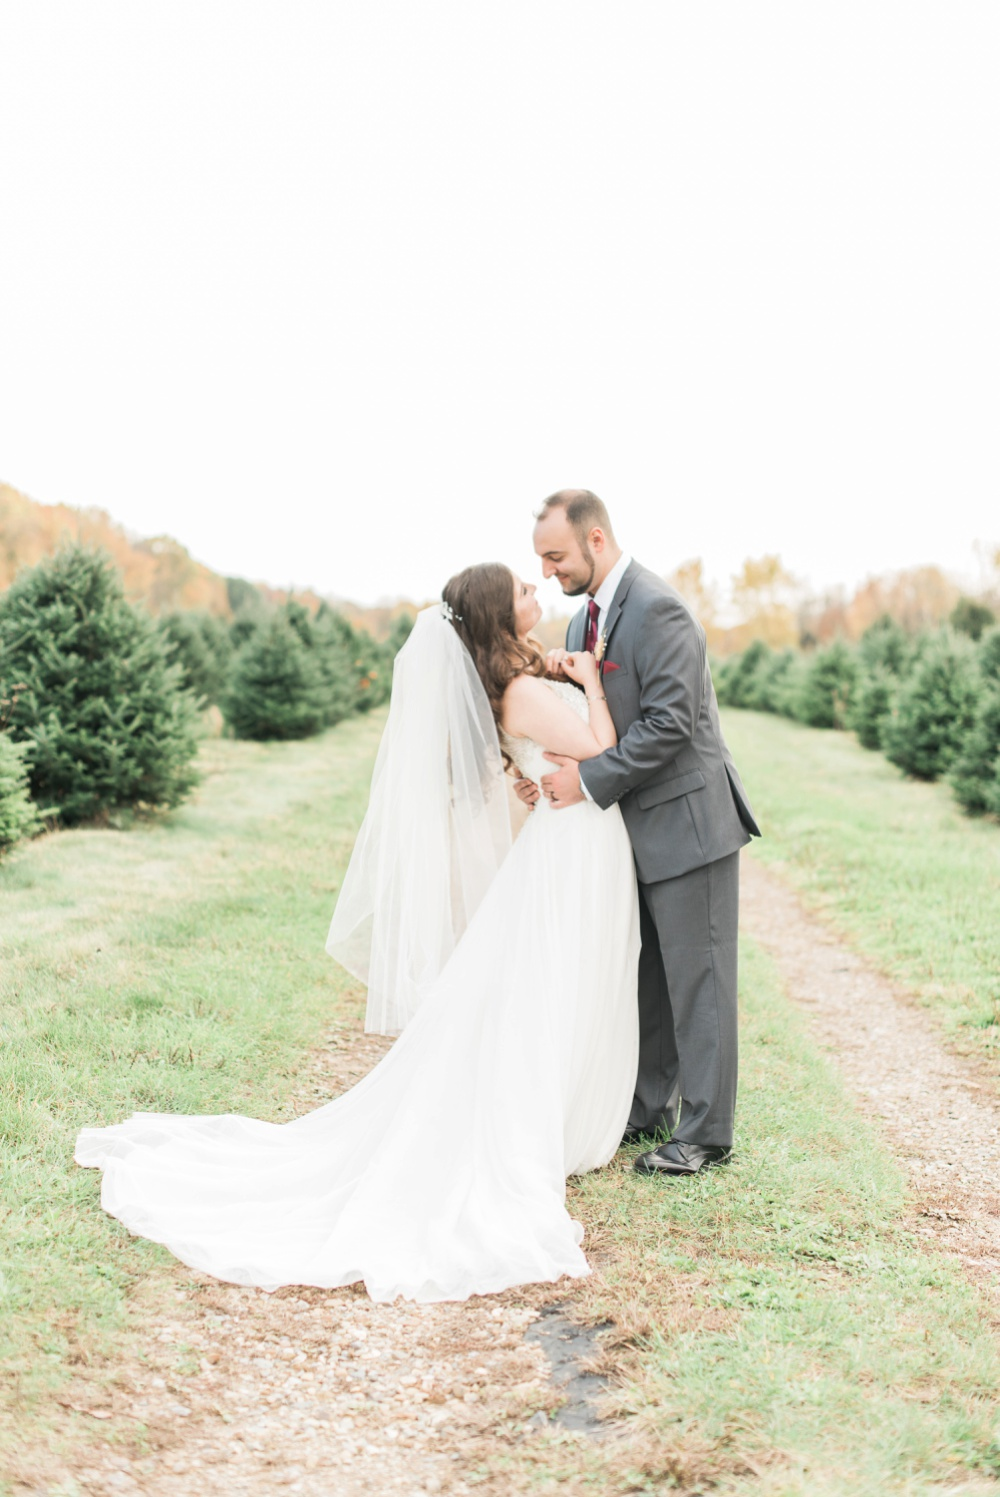 ricciardis-tree-farm-wedding-wadsworth-ohio-lauren-ryan_0127.jpg